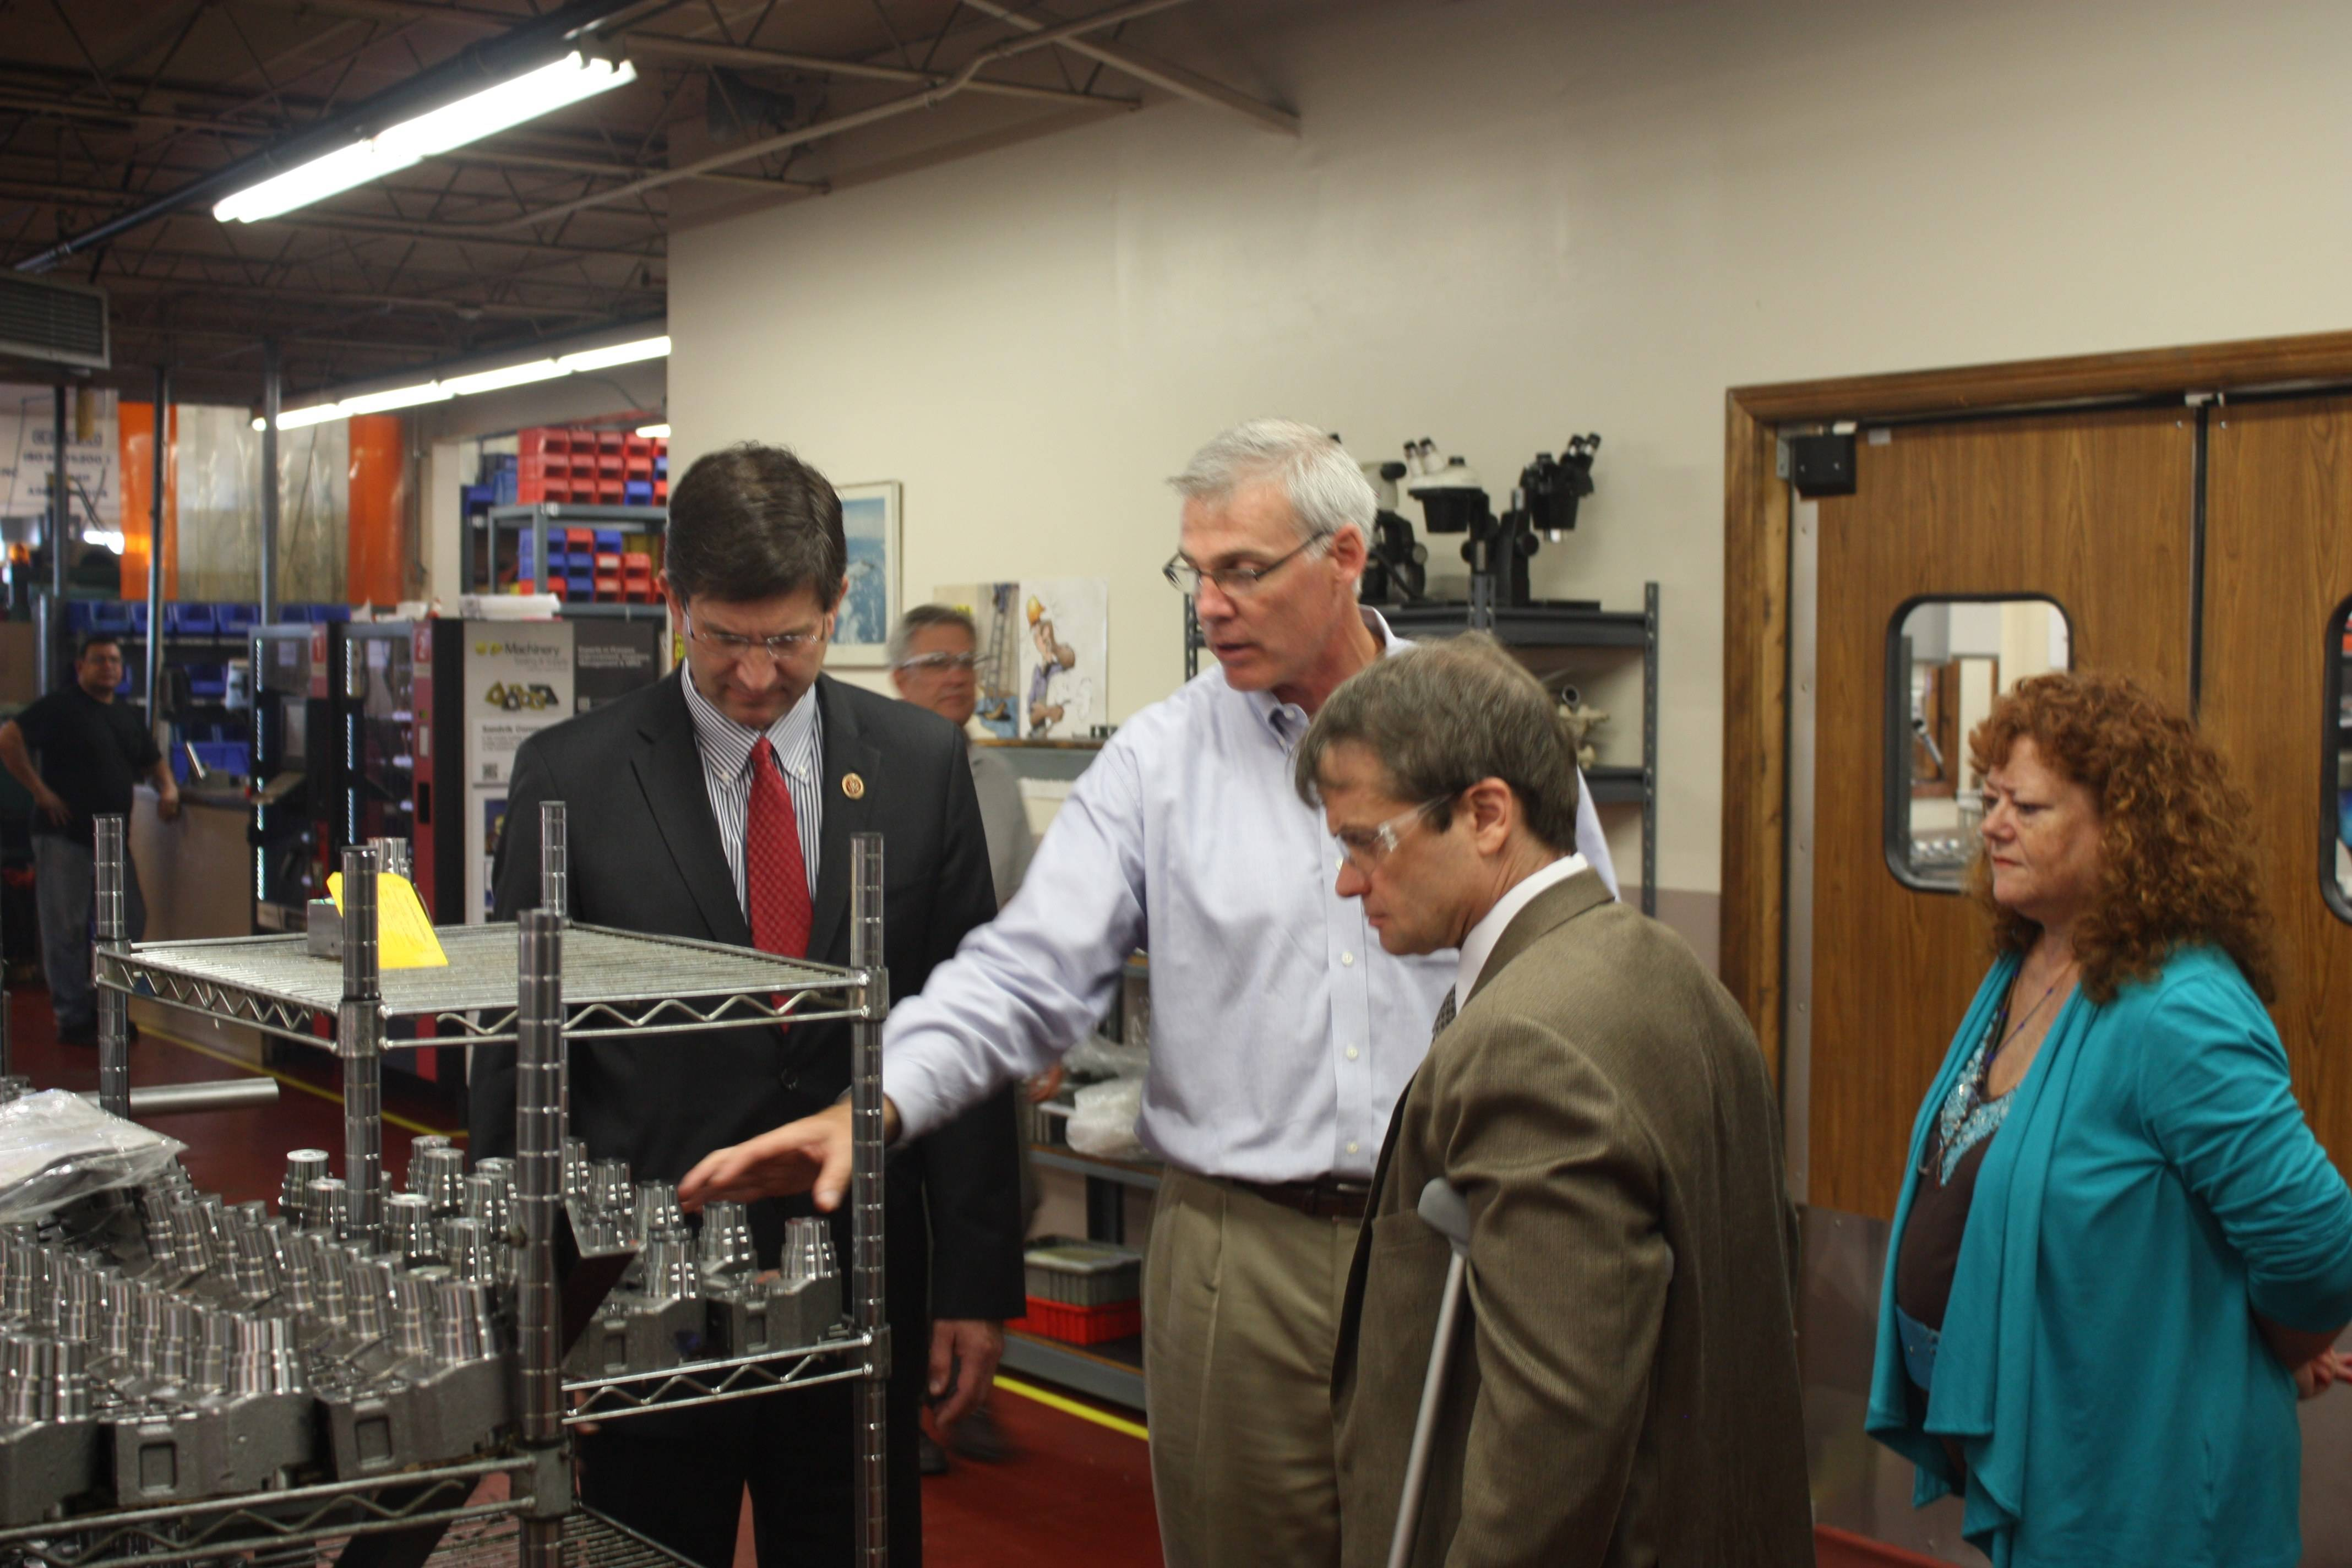 Chucking Machine Products President Tim Merrigan discusses manufacturing issues with Congressmen Brad Schneider (L) and Mike Quigley as Illinois Alliance of Manufacturing President Pam McDonough looks on.